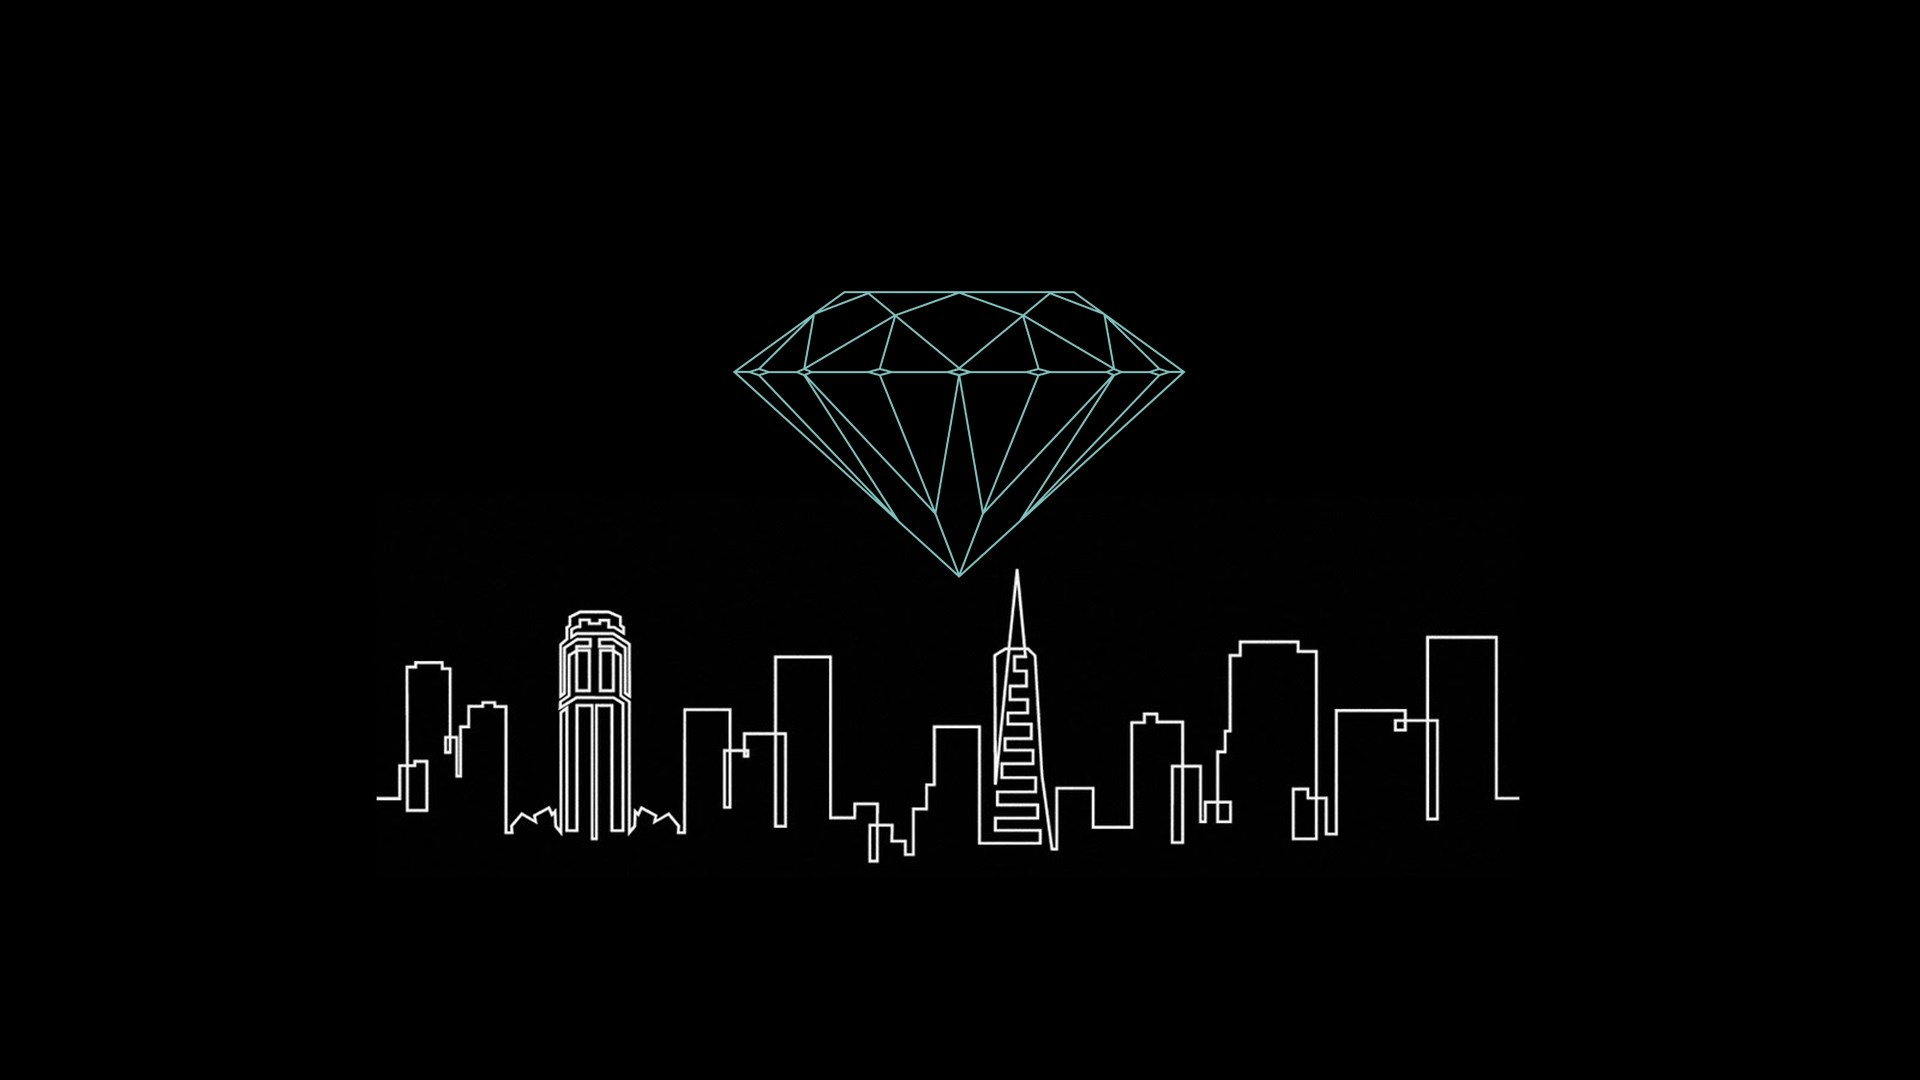 diamond-supply-wallpaper-wpc5804122